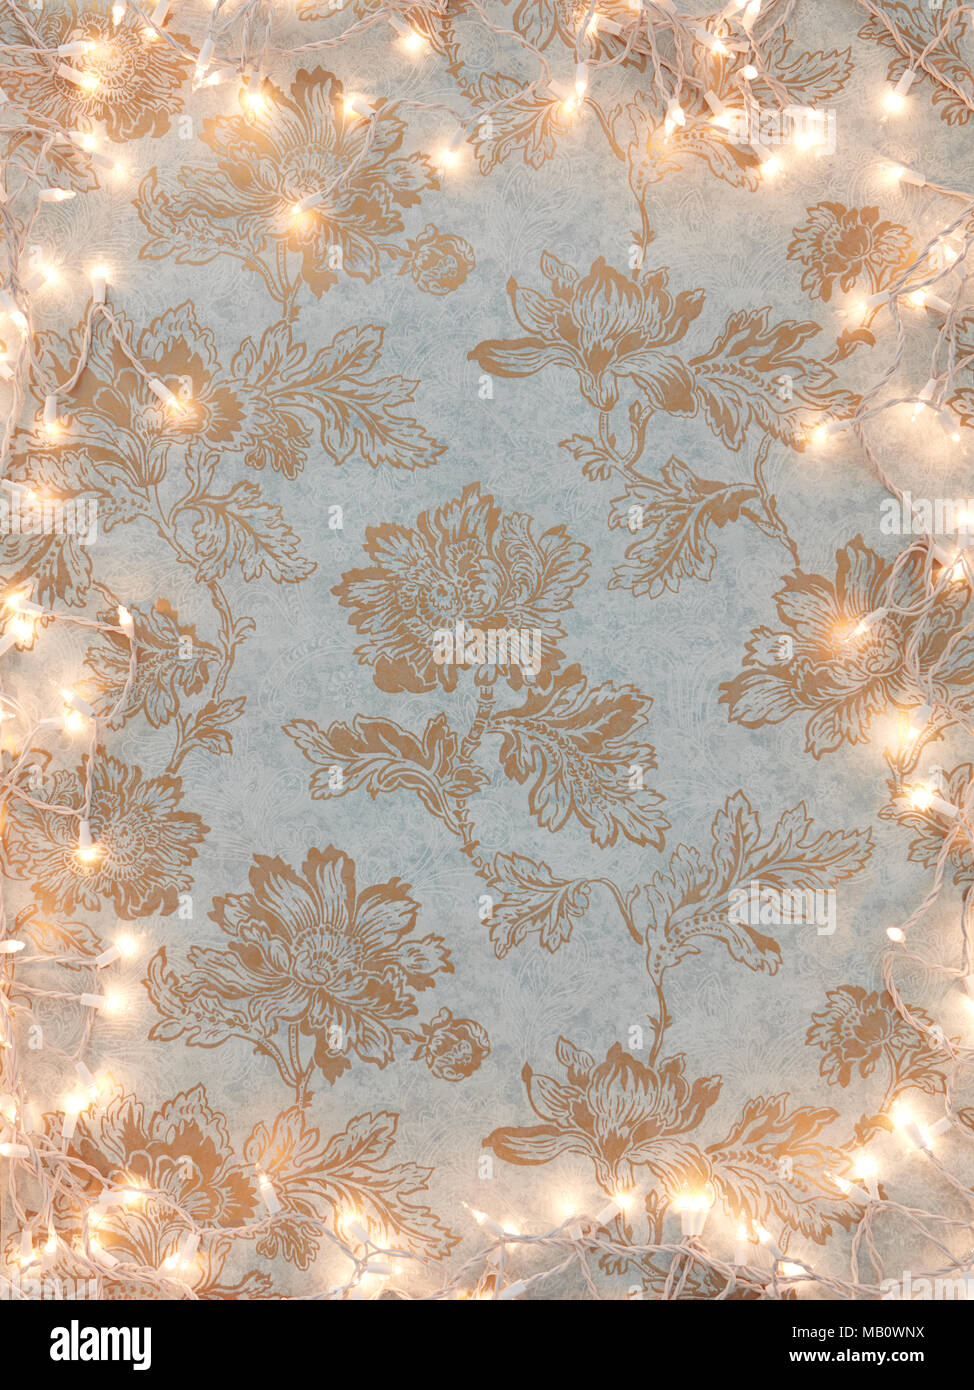 Vintage Gold Floral Wallpaper Background With Holiday White Lights